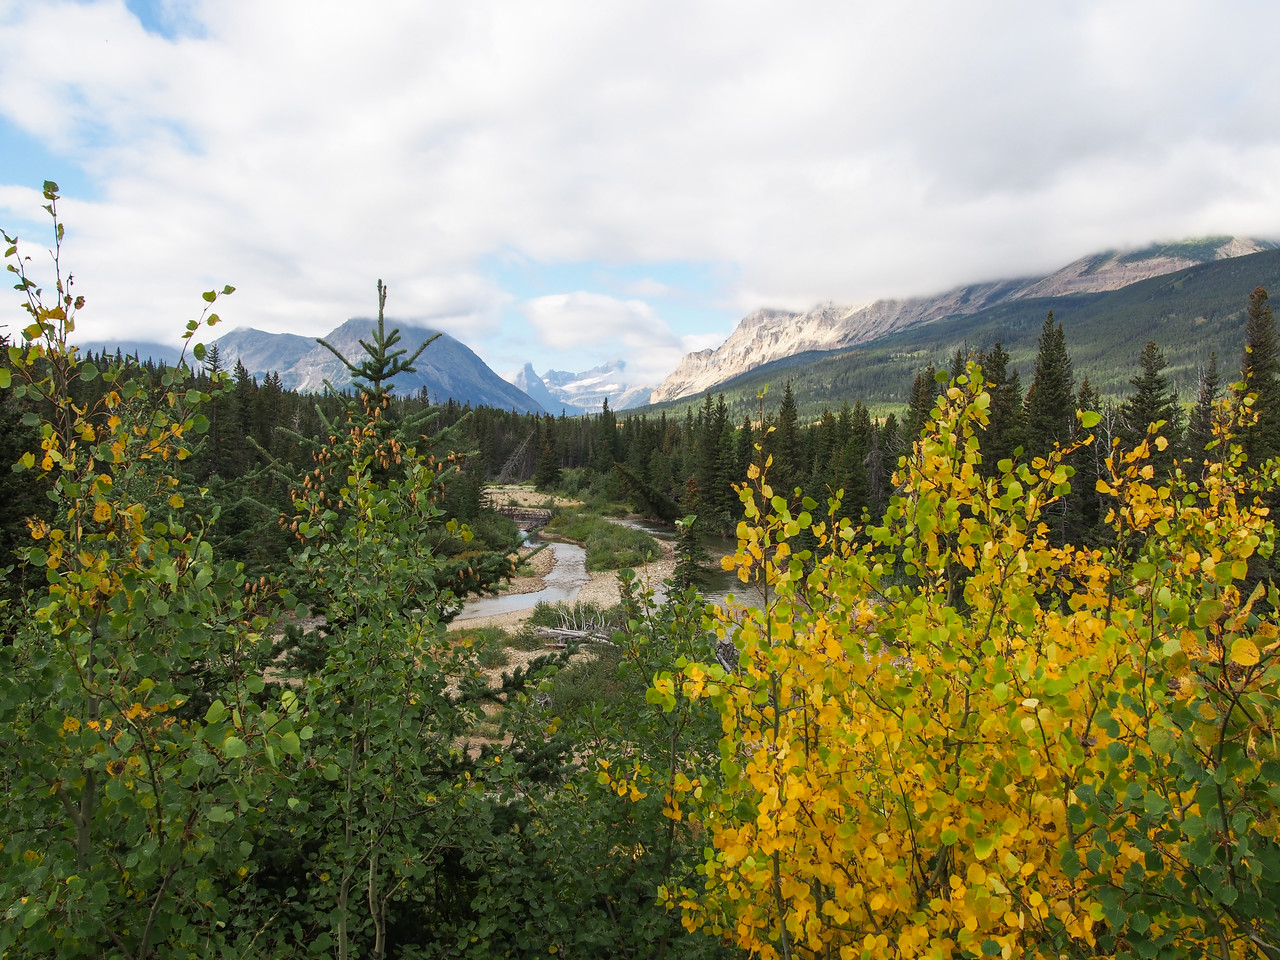 Day 1/5 - view of Belly River from Chief River trailhead, Glacier NP